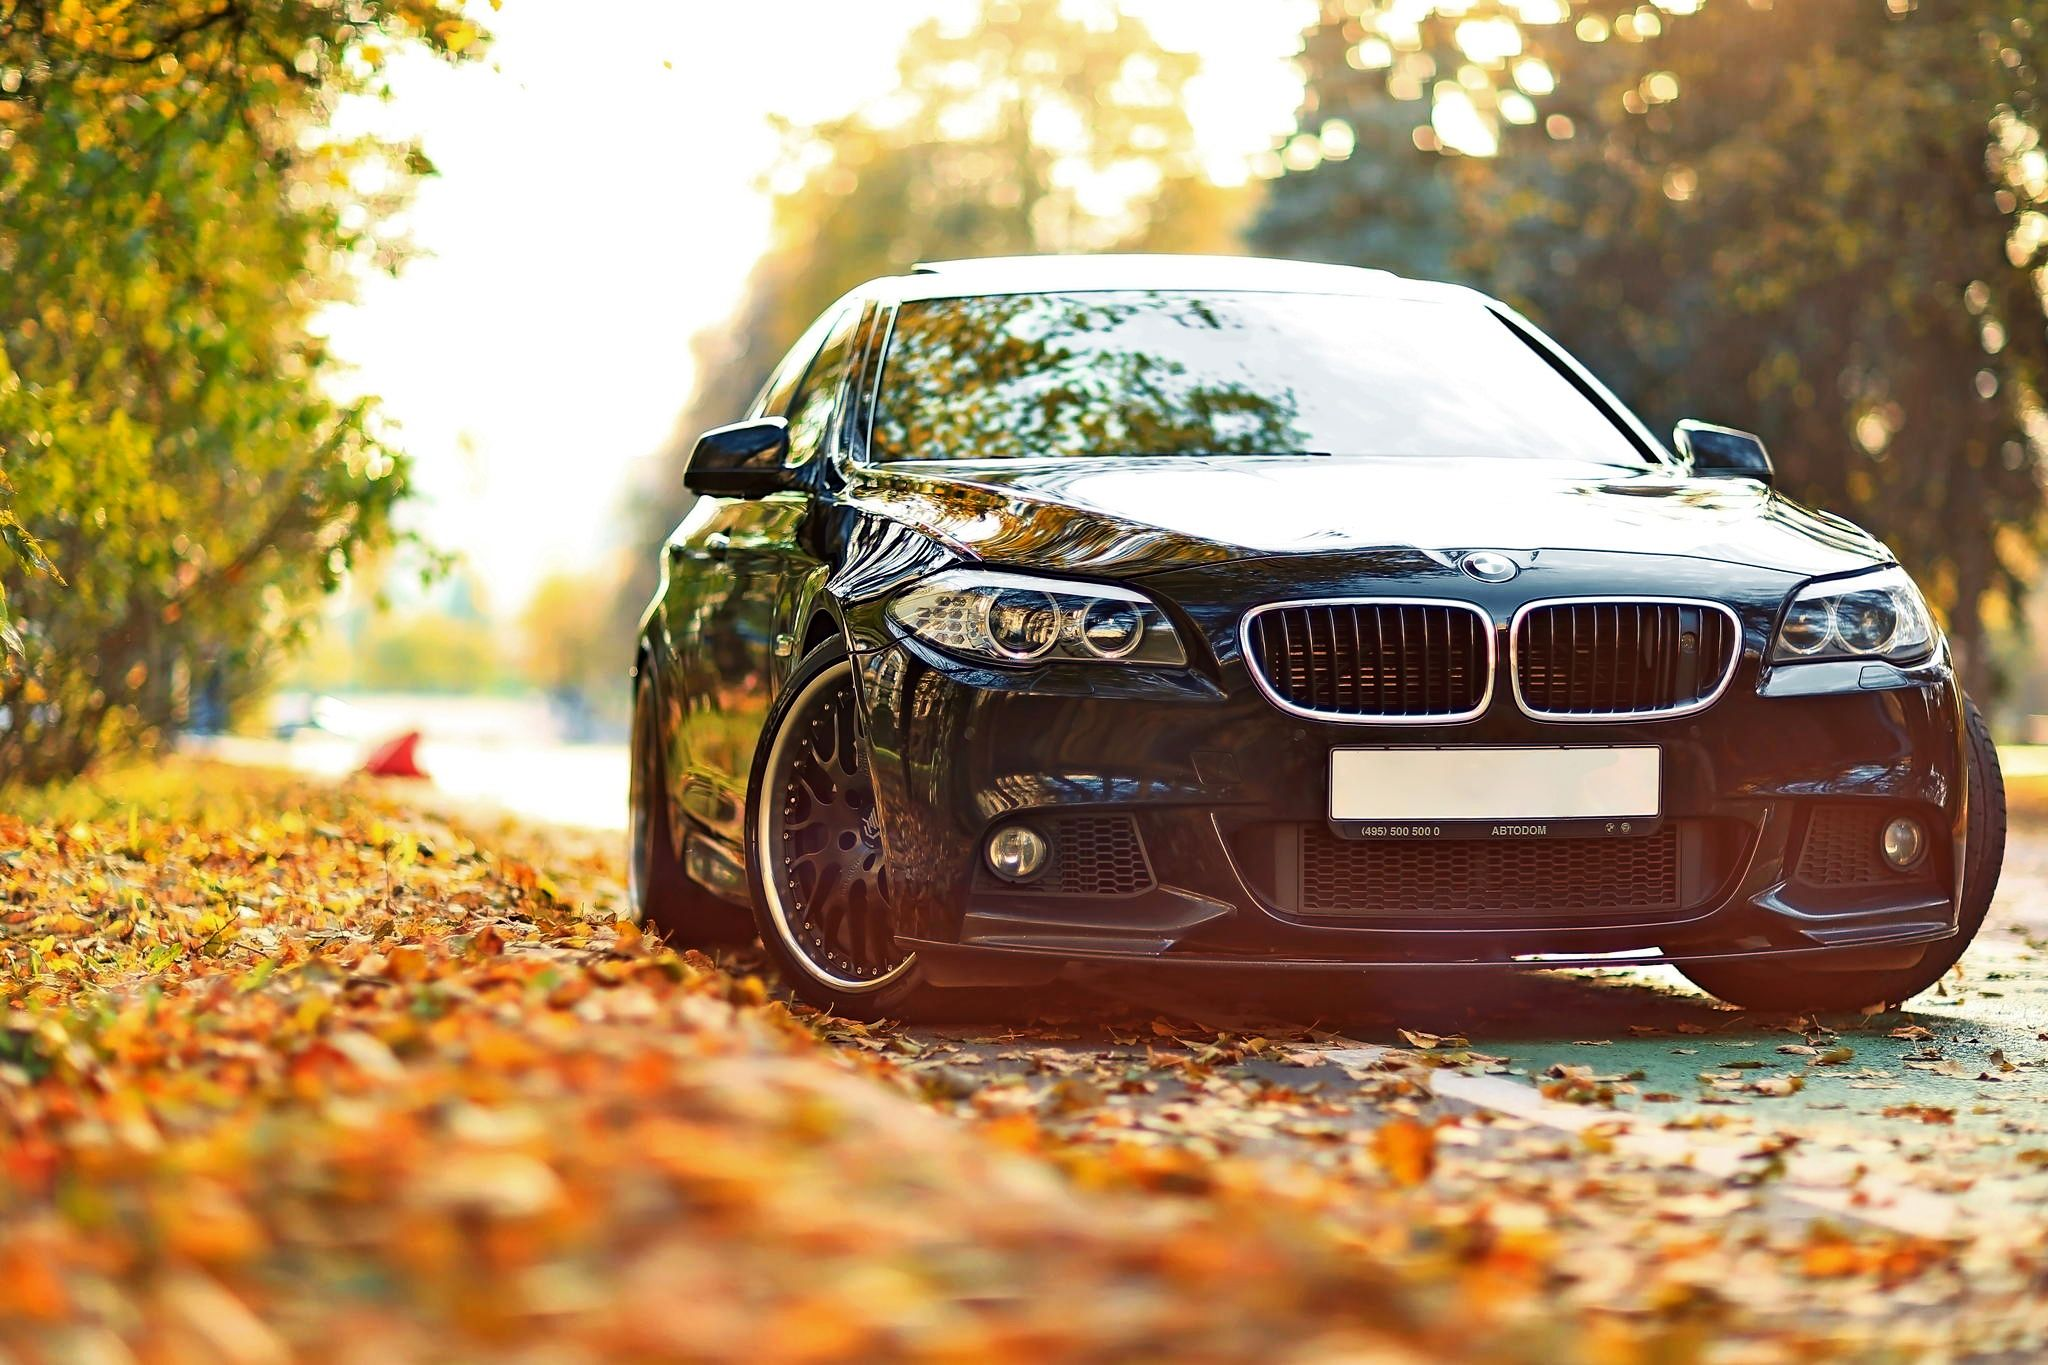 Car Bmw Fall Wallpaper No 2903 Bmw Cars Bmw Car Car Wallpapers